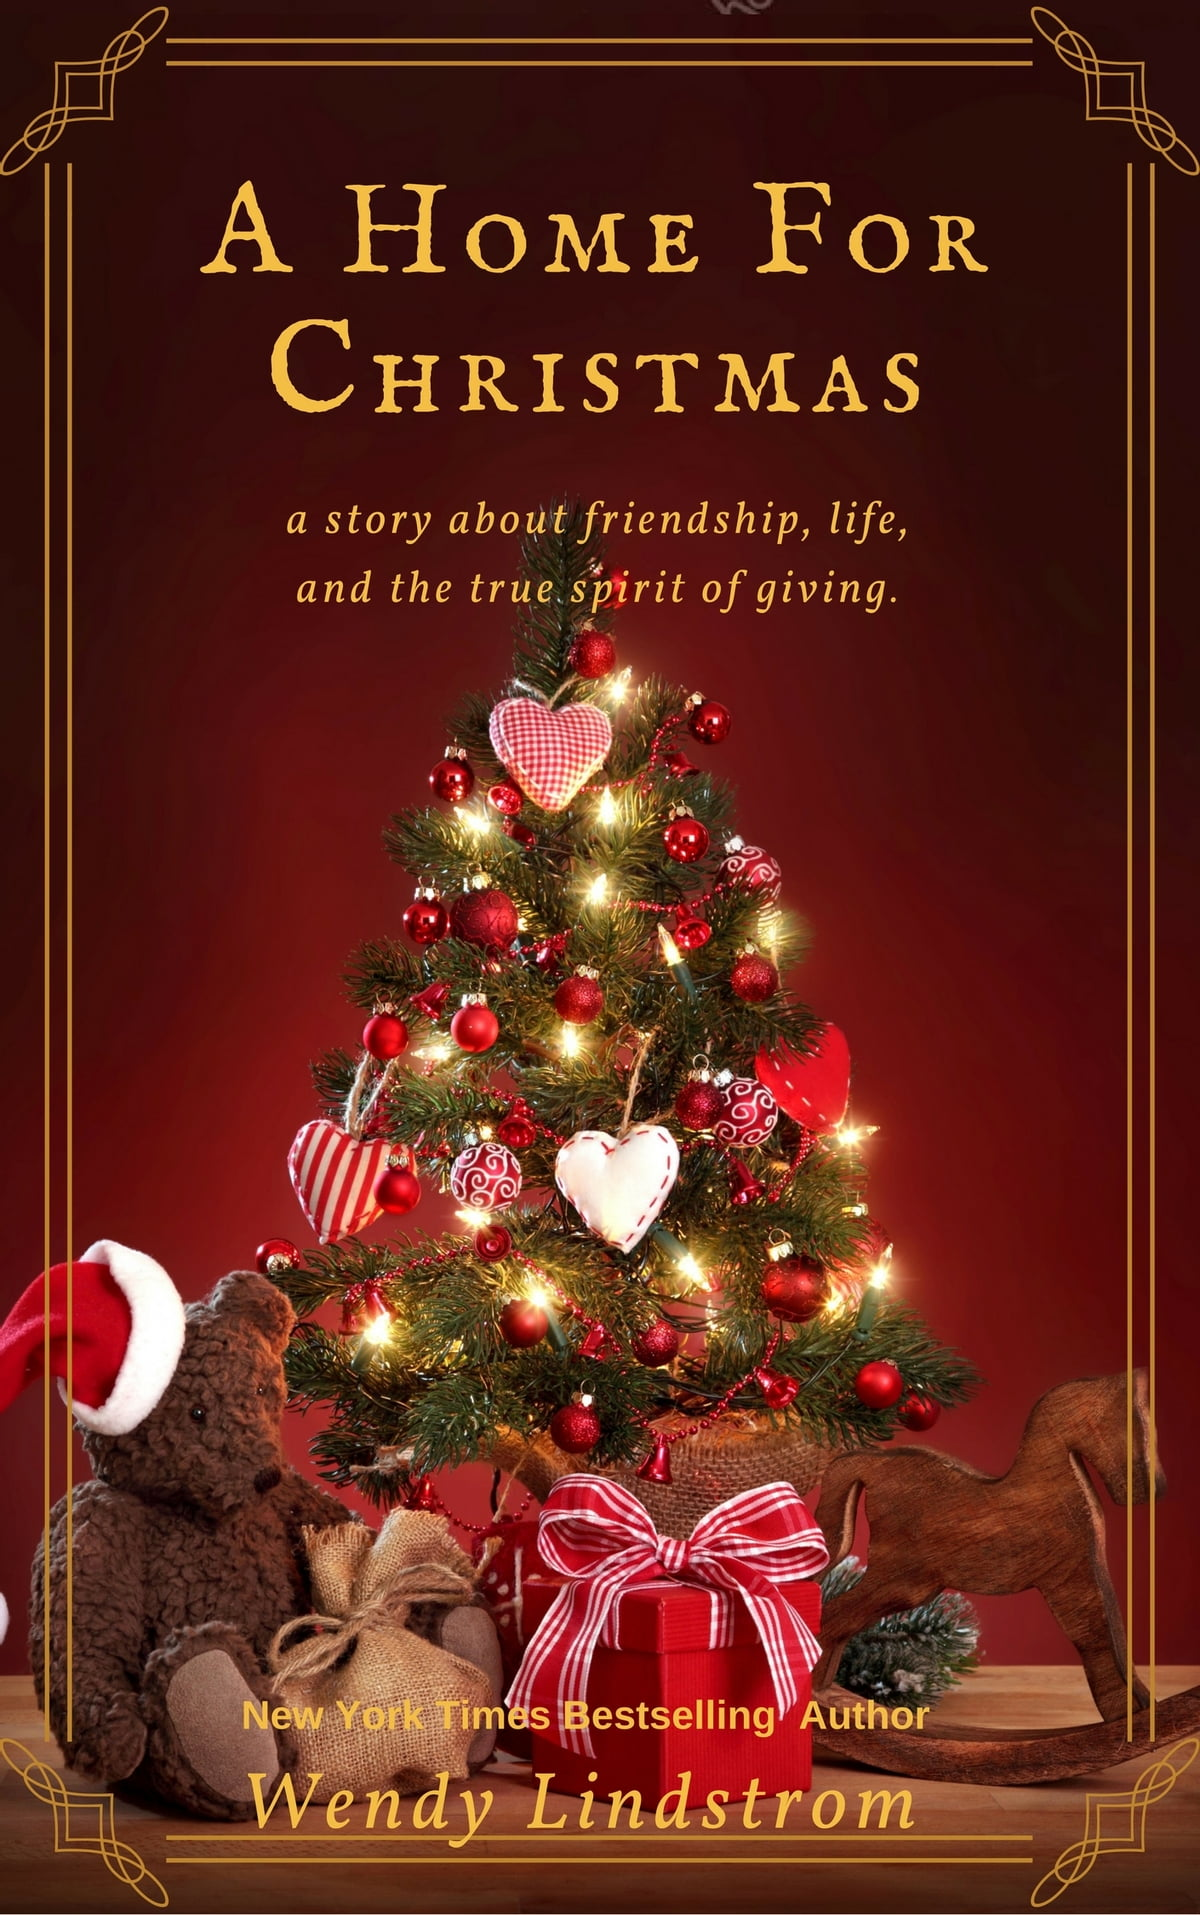 A home for christmas ebook by wendy lindstrom 9781939263292 a home for christmas ebook by wendy lindstrom 9781939263292 rakuten kobo fandeluxe PDF